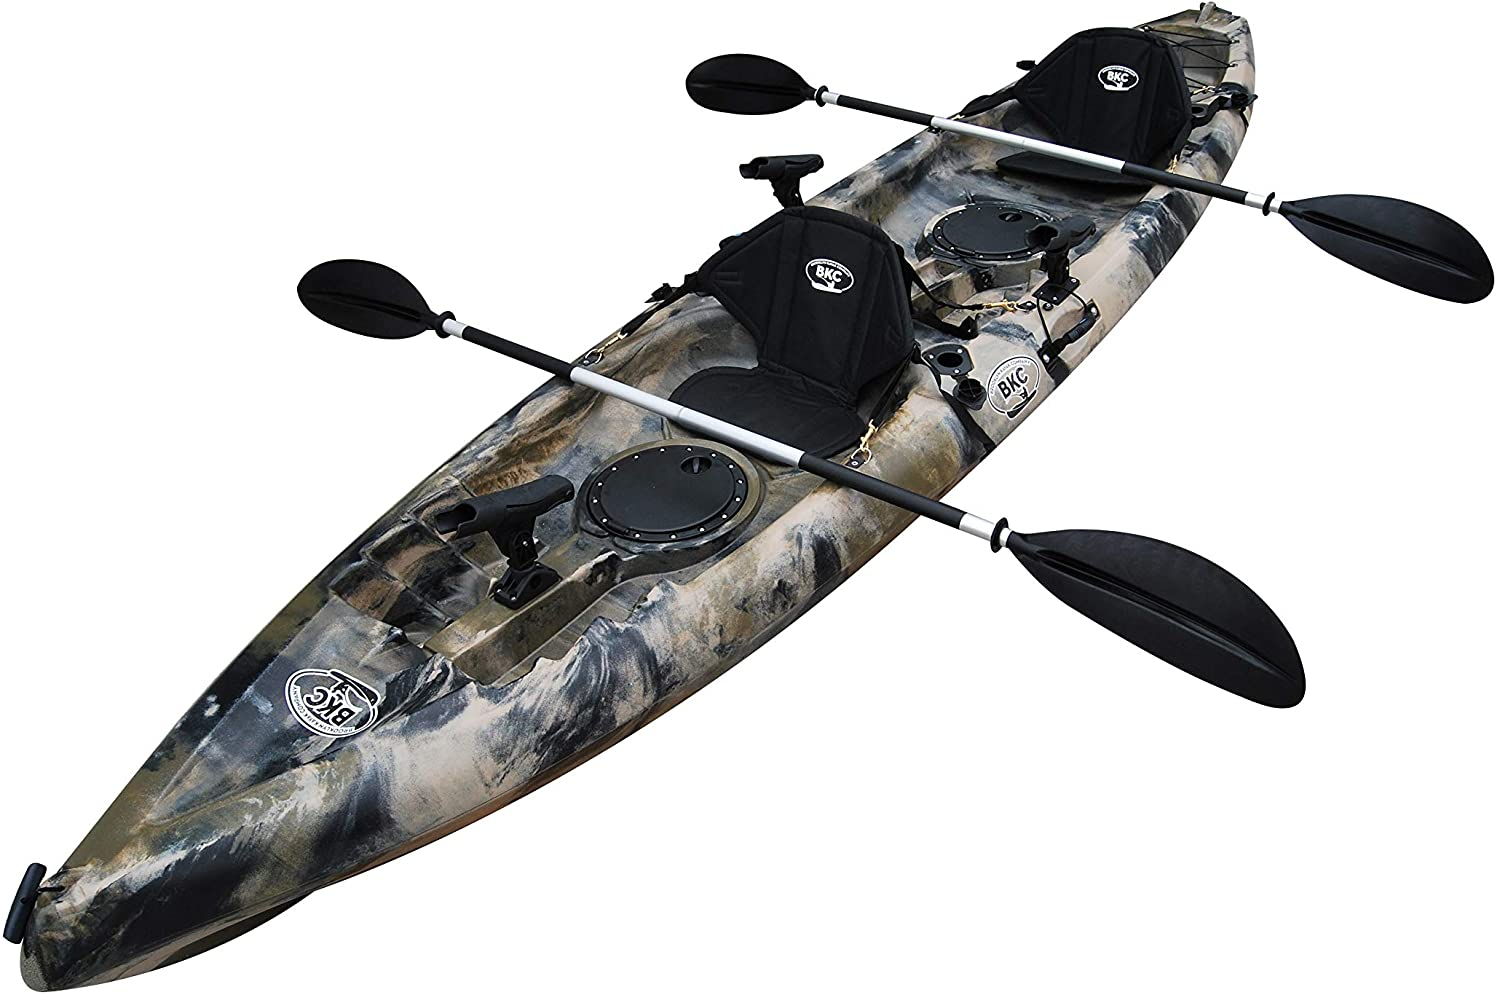 Best Tandem Fishing Kayaks 2 Person Fishing Kayaks In 2020